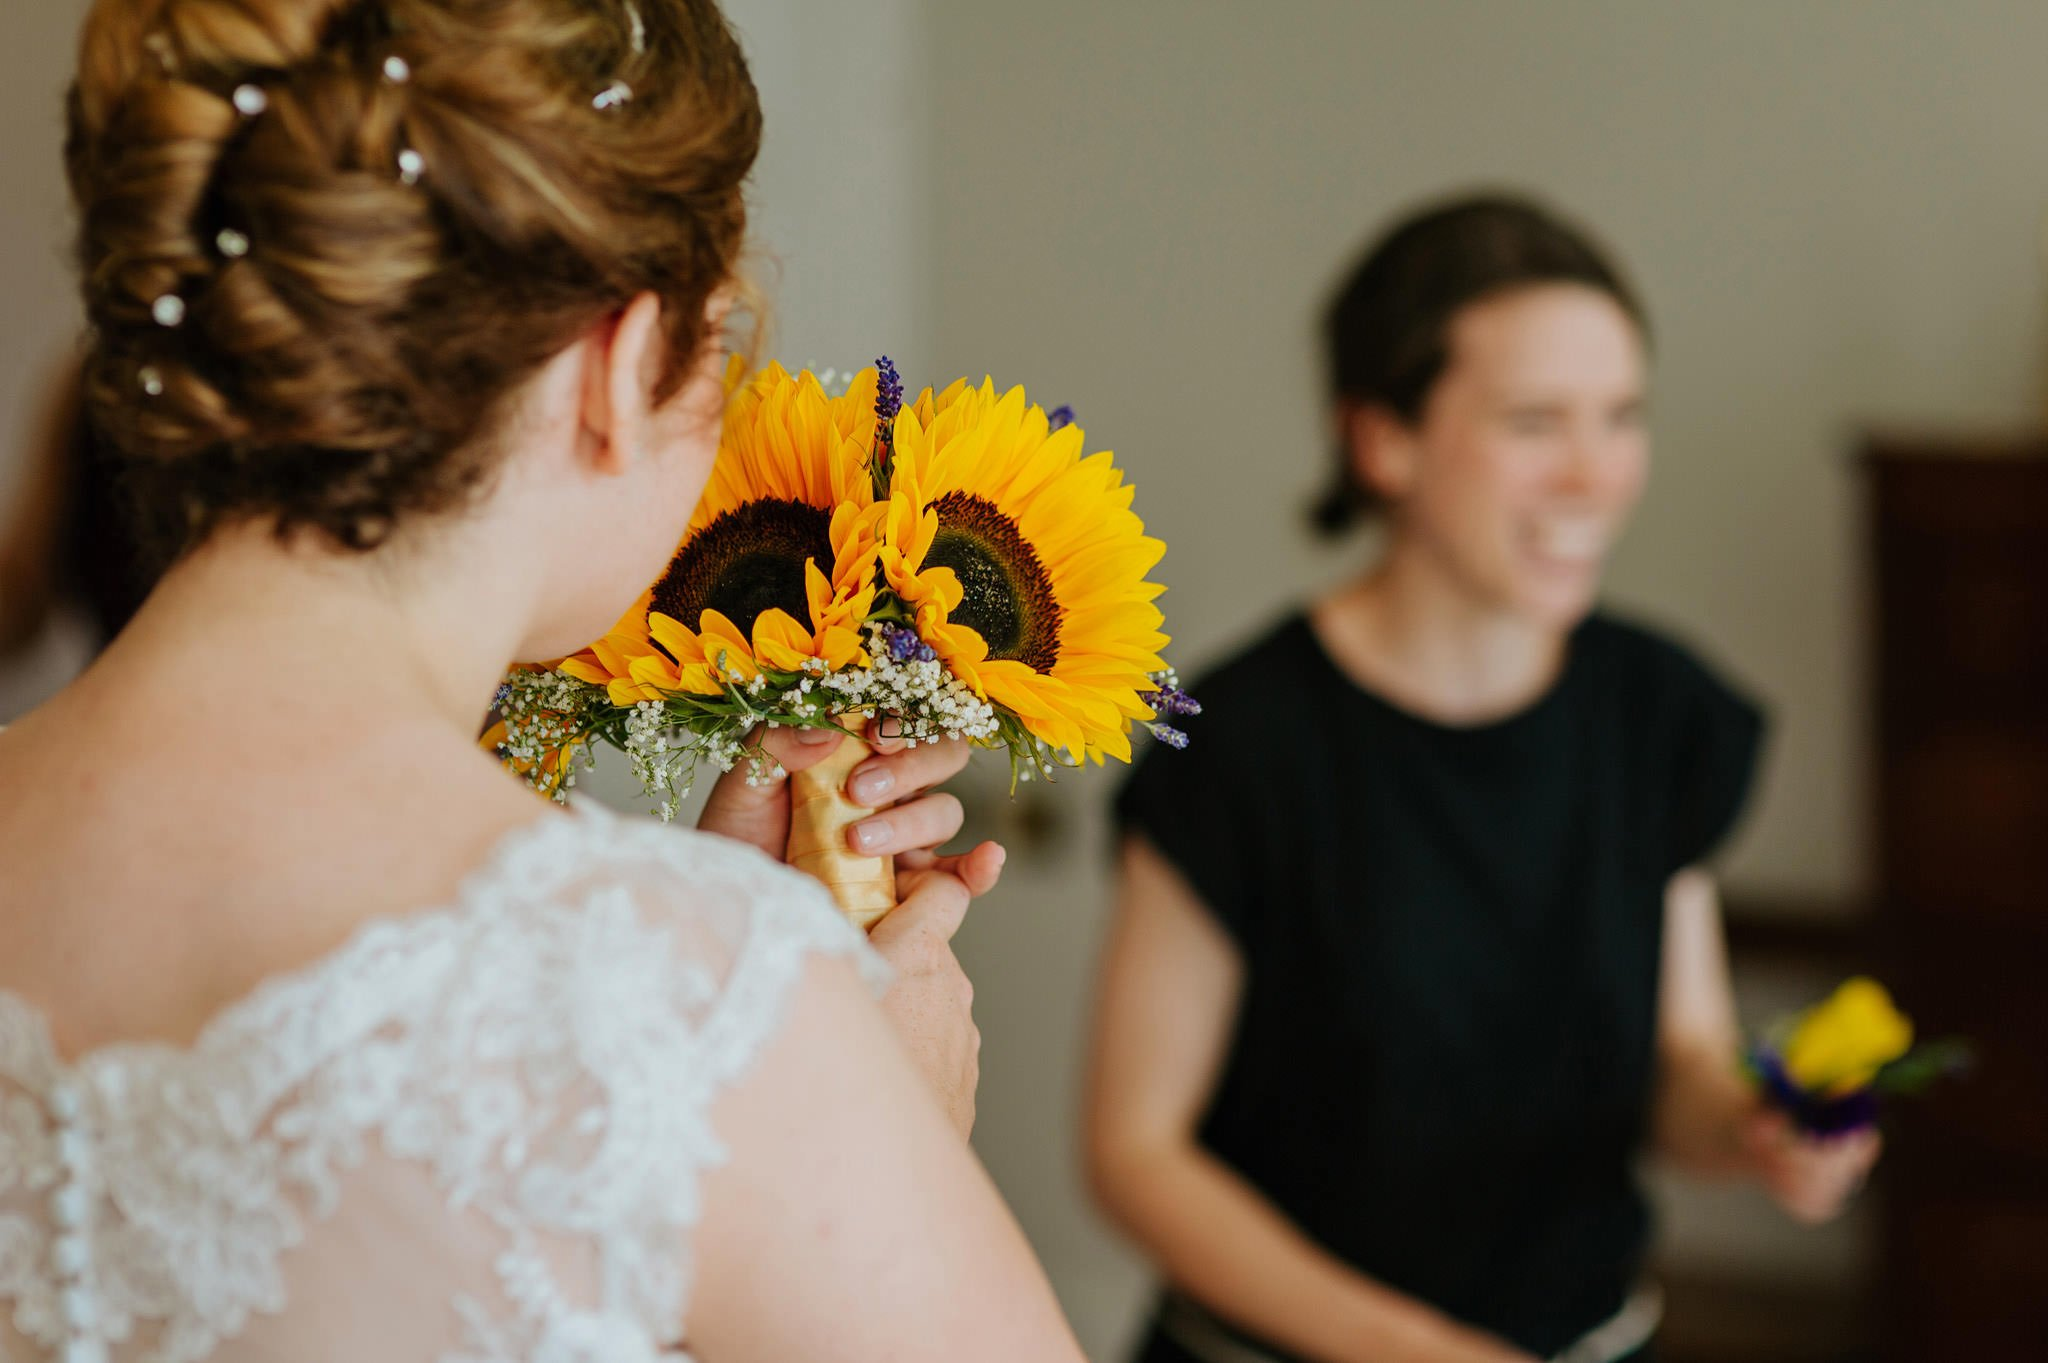 Wedding photography at Homme House in Herefordshire, West Midlands 23